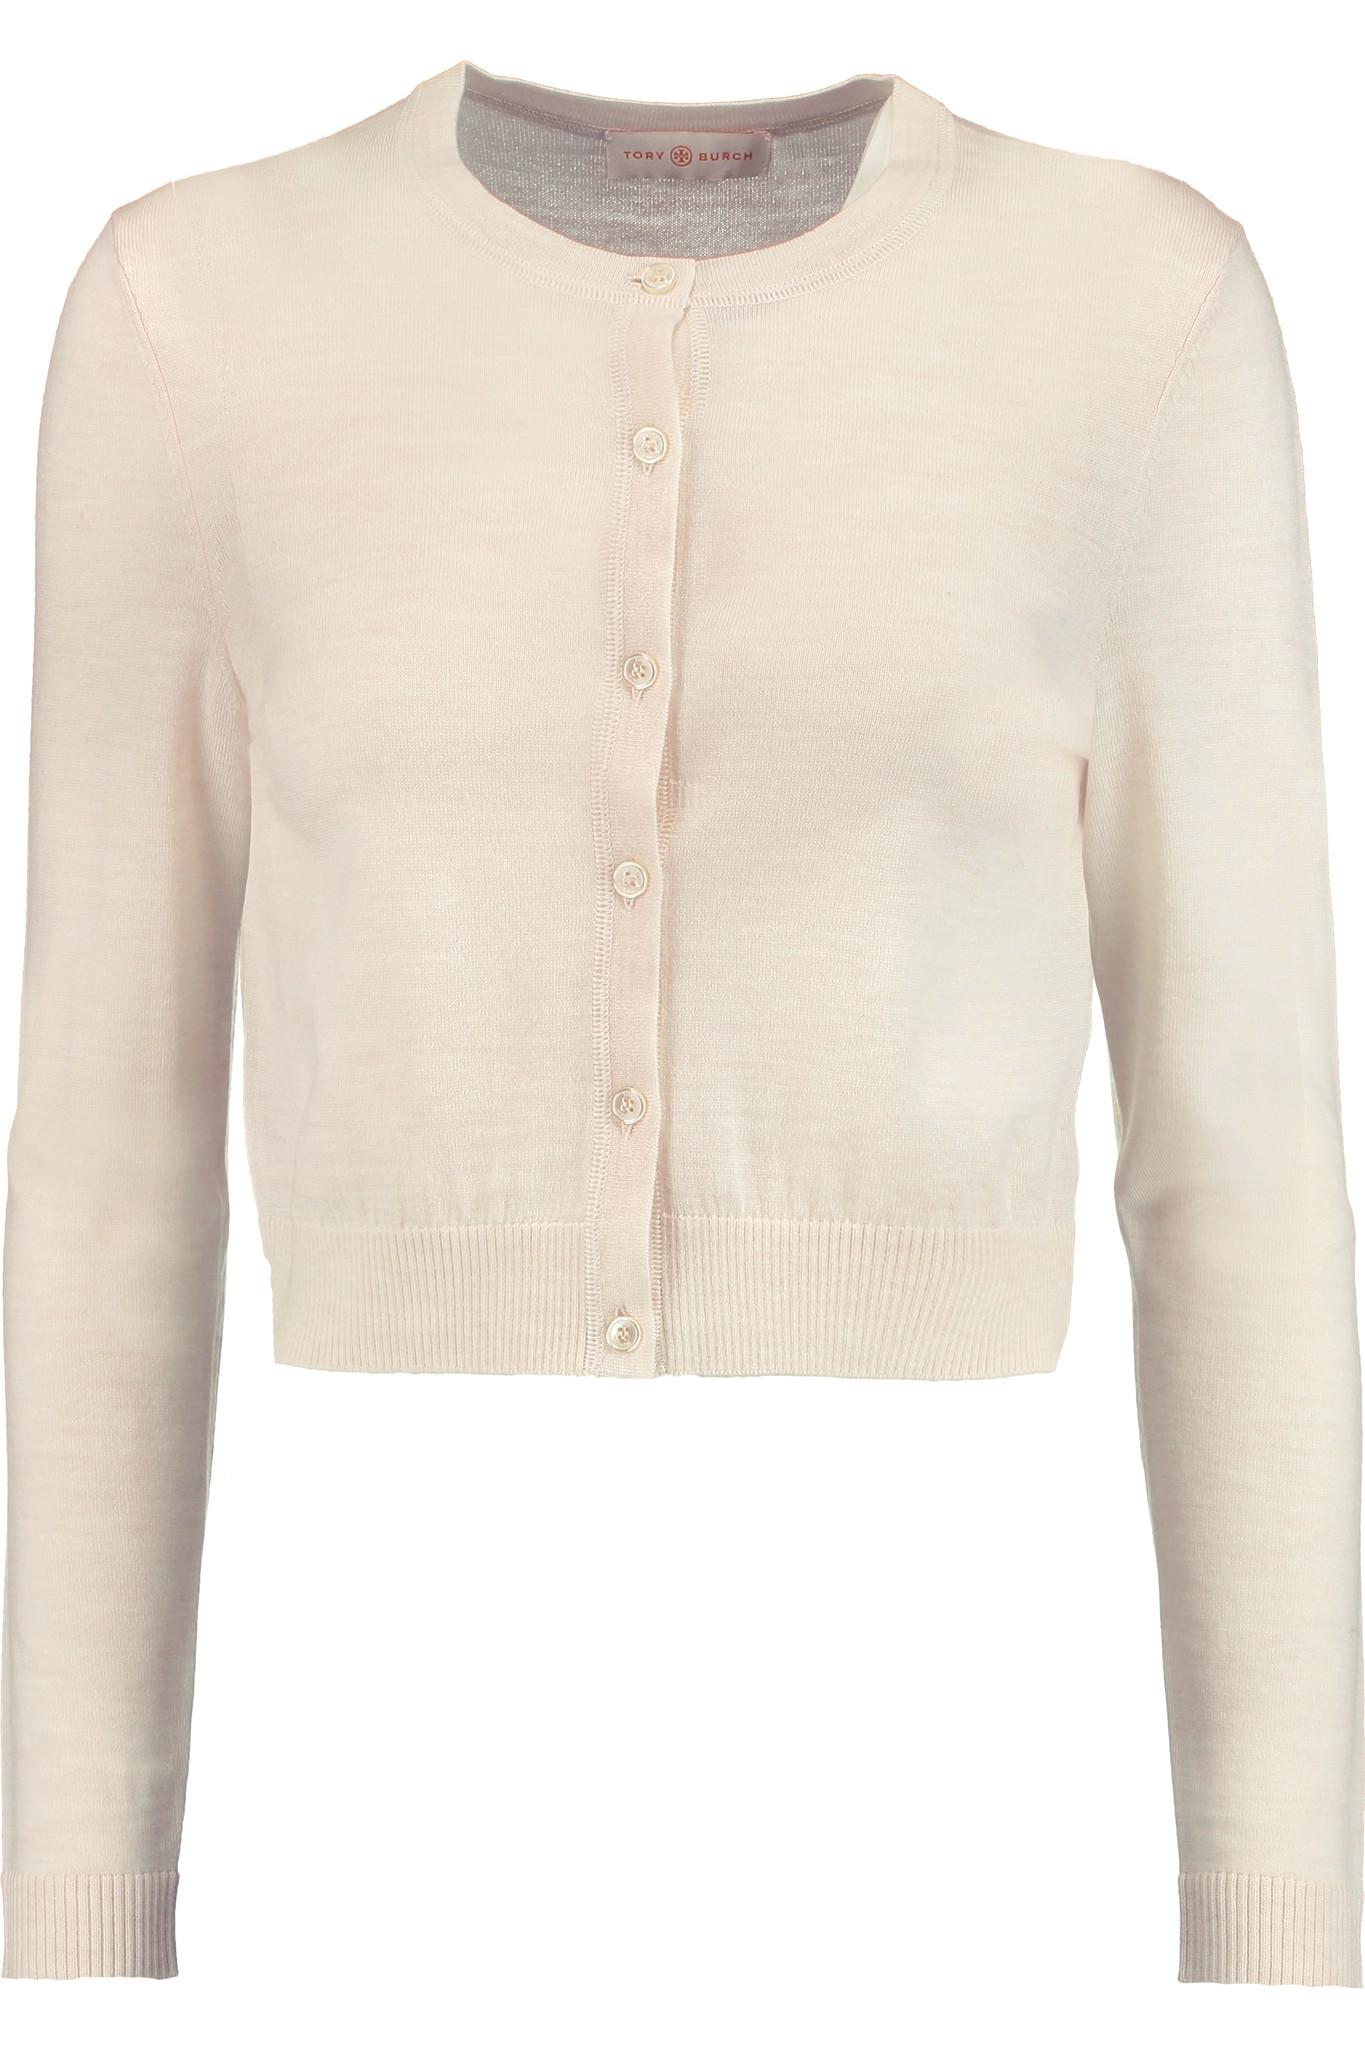 e35d9069e4c Lyst - Tory Burch Simone Cropped Merino Wool Cardigan in Natural